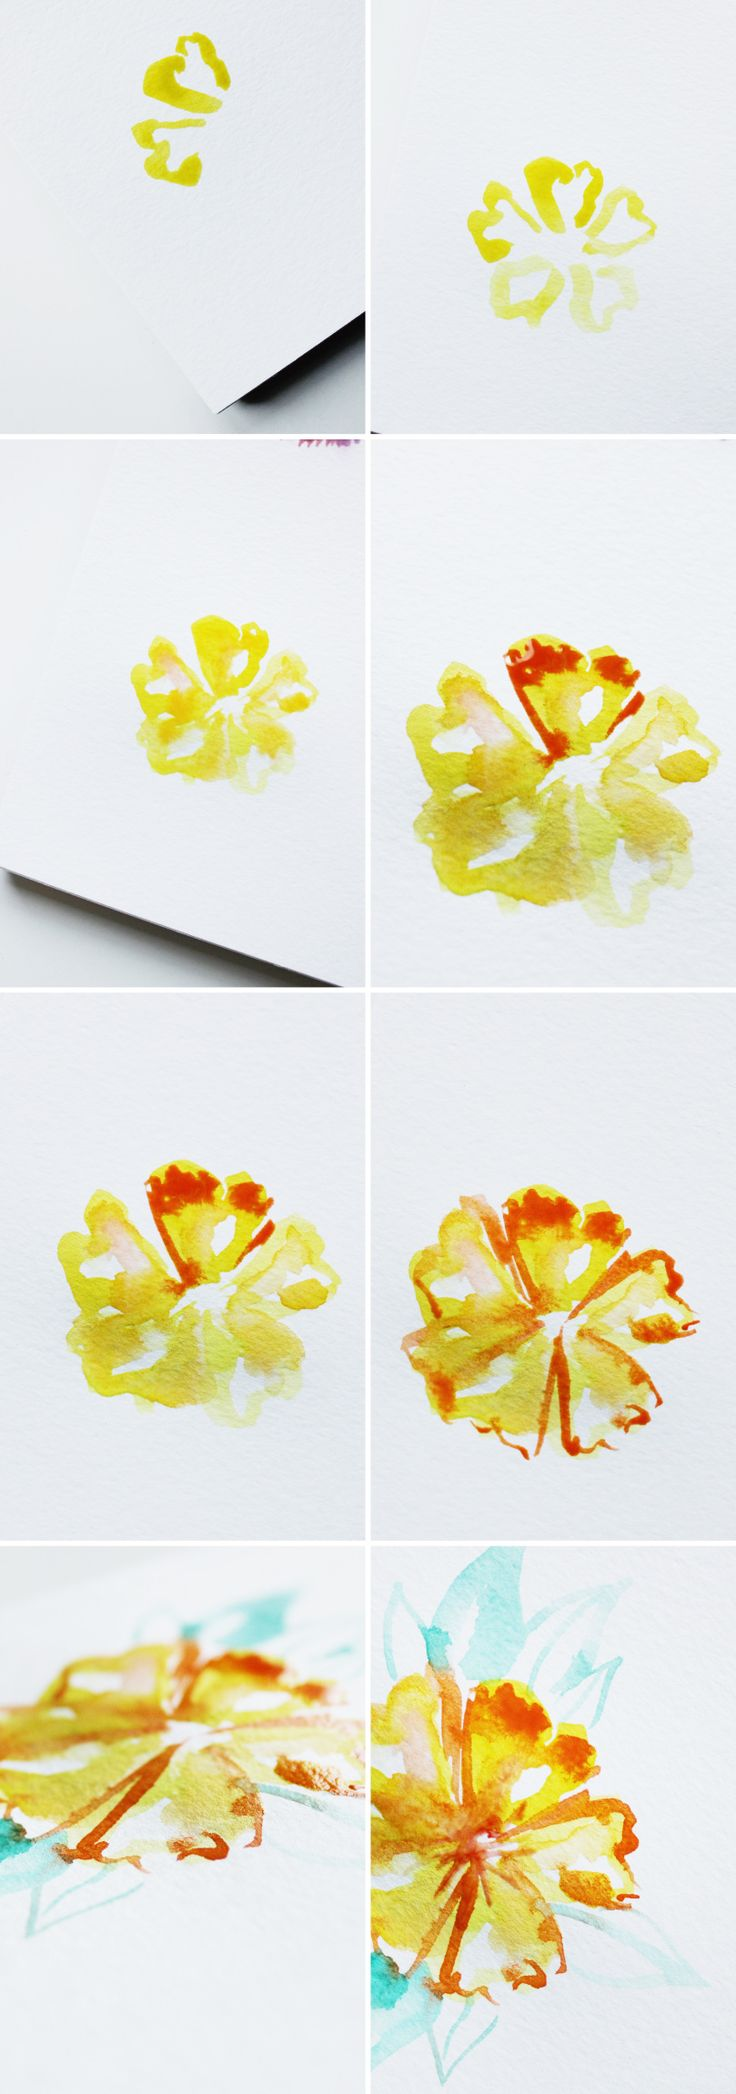 8 Ideas On Drawing Dreamy Flowers With Watercolors